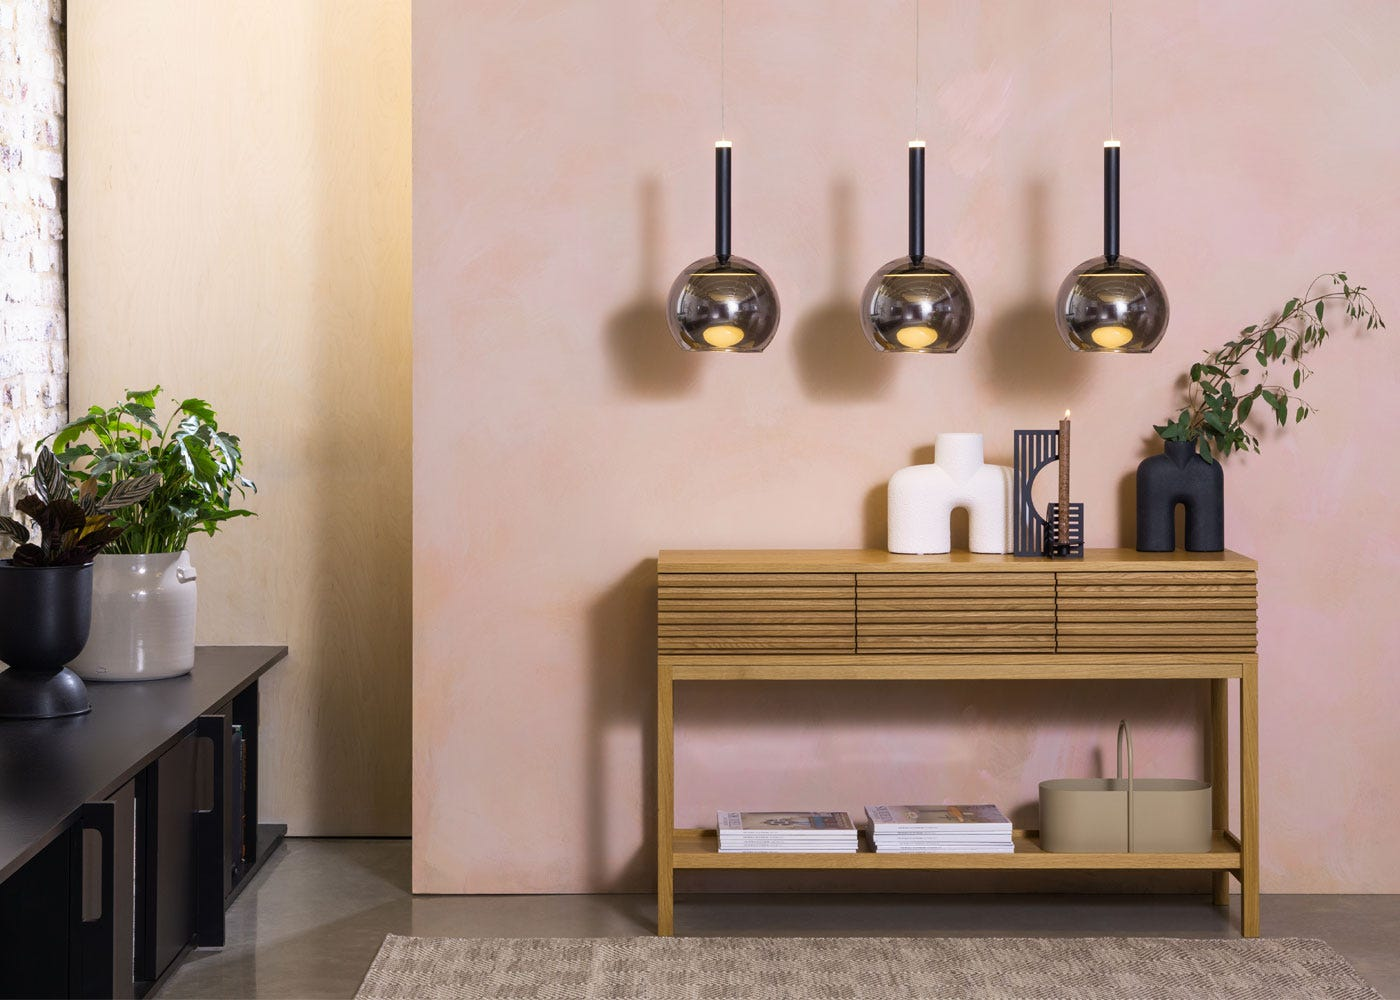 Disc 3 long LED pendant with smoked glass shades (sold separately), Verona console table.